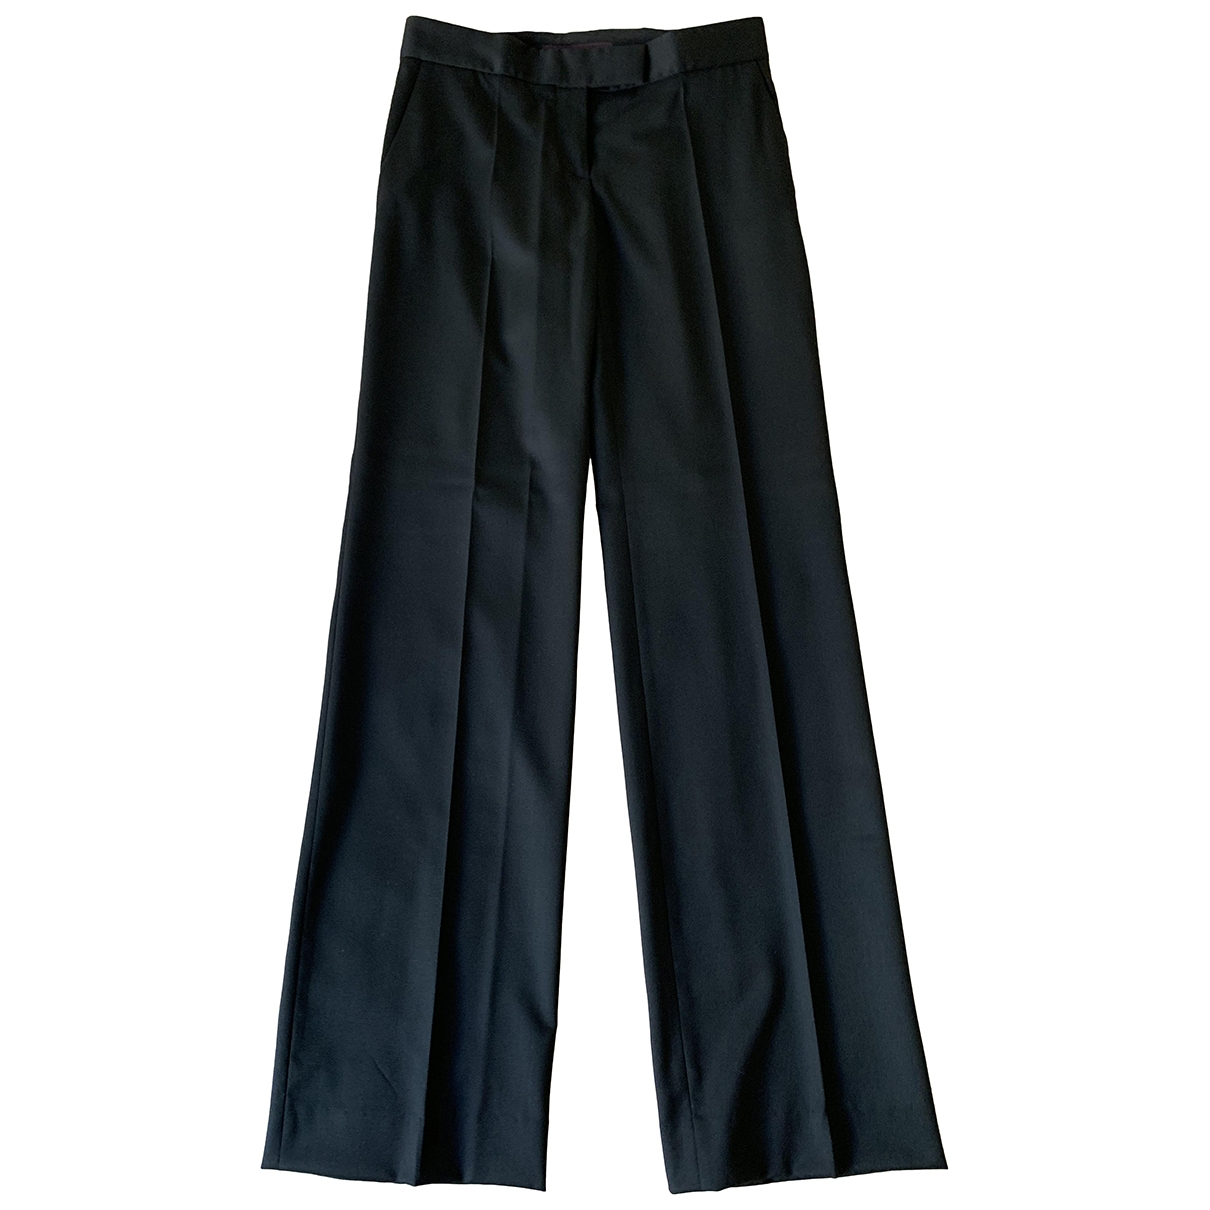 Stella Mccartney \N Black Wool Trousers for Women 38 IT